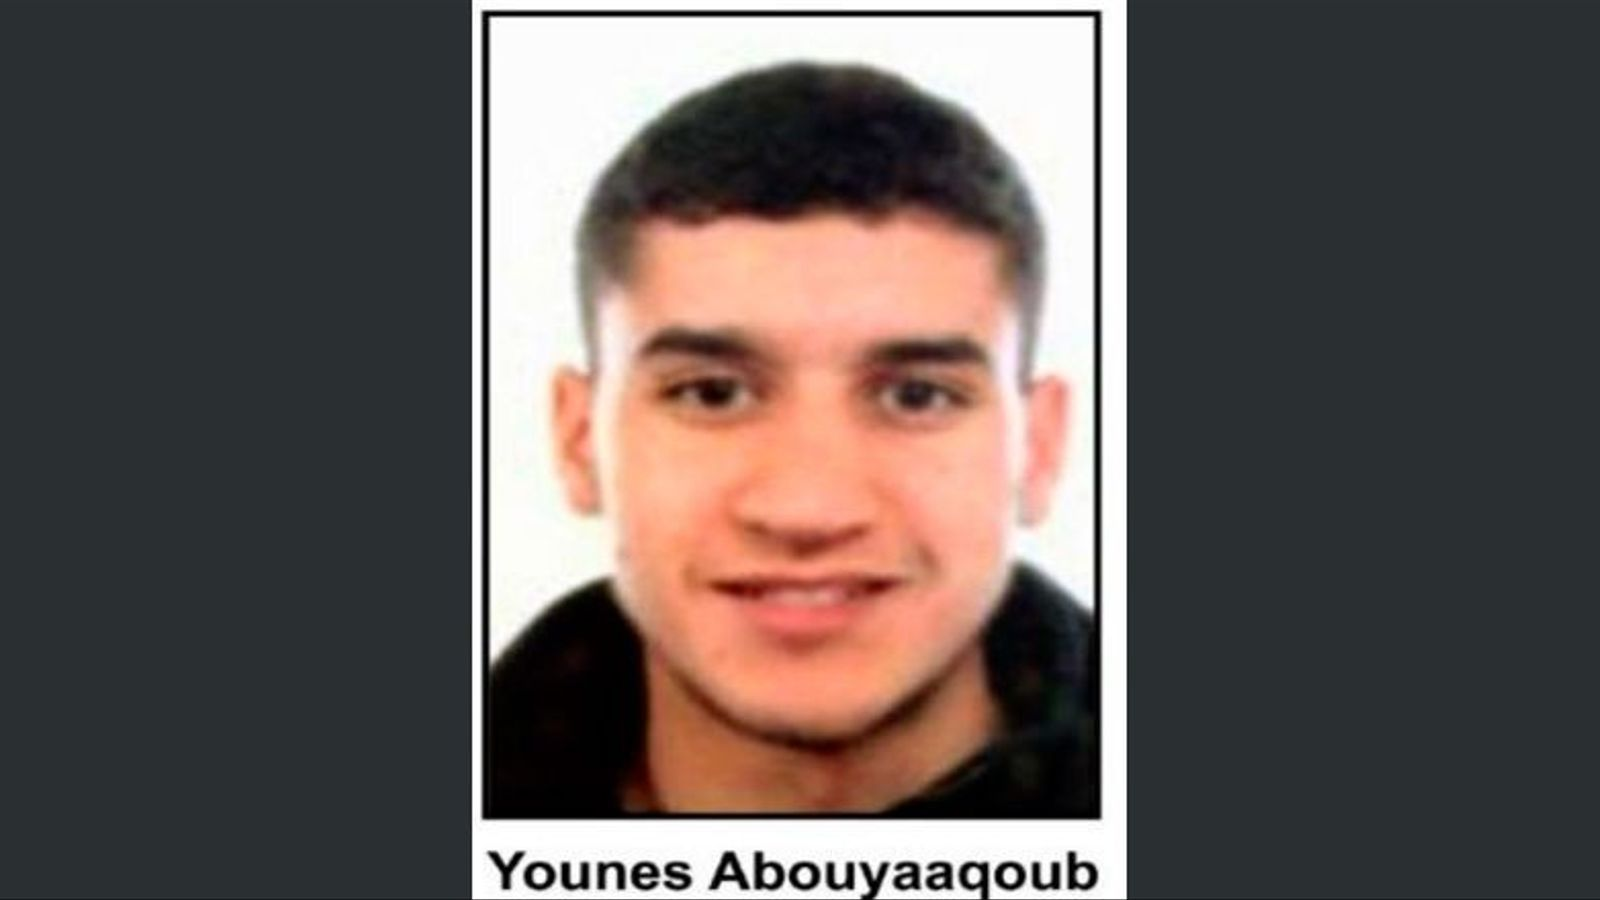 Younes Abouyaaqoub